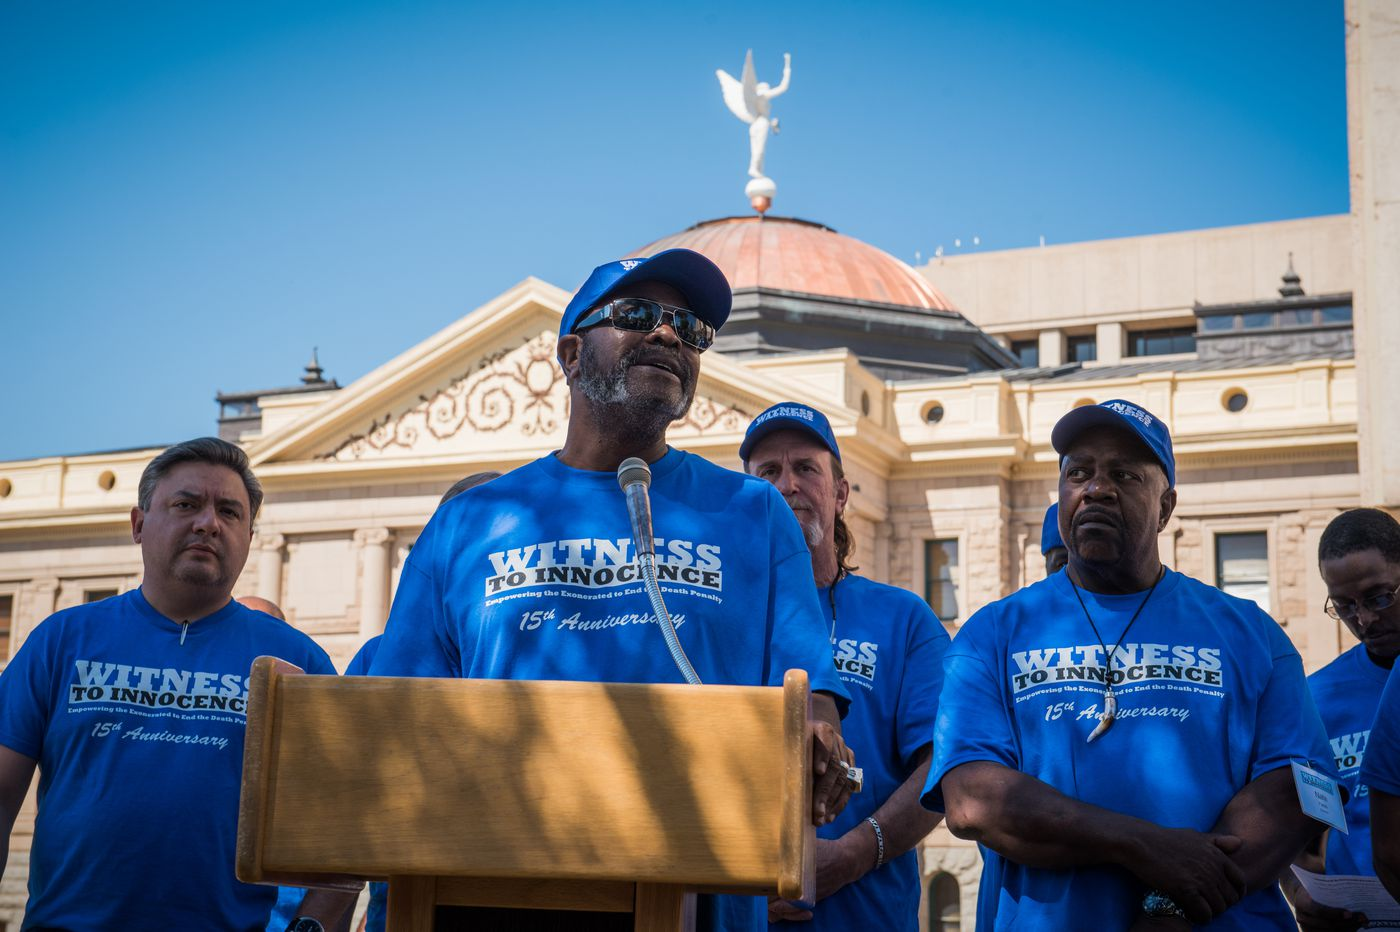 For death row survivors, the fight against capital punishment starts in Philly | Opinion